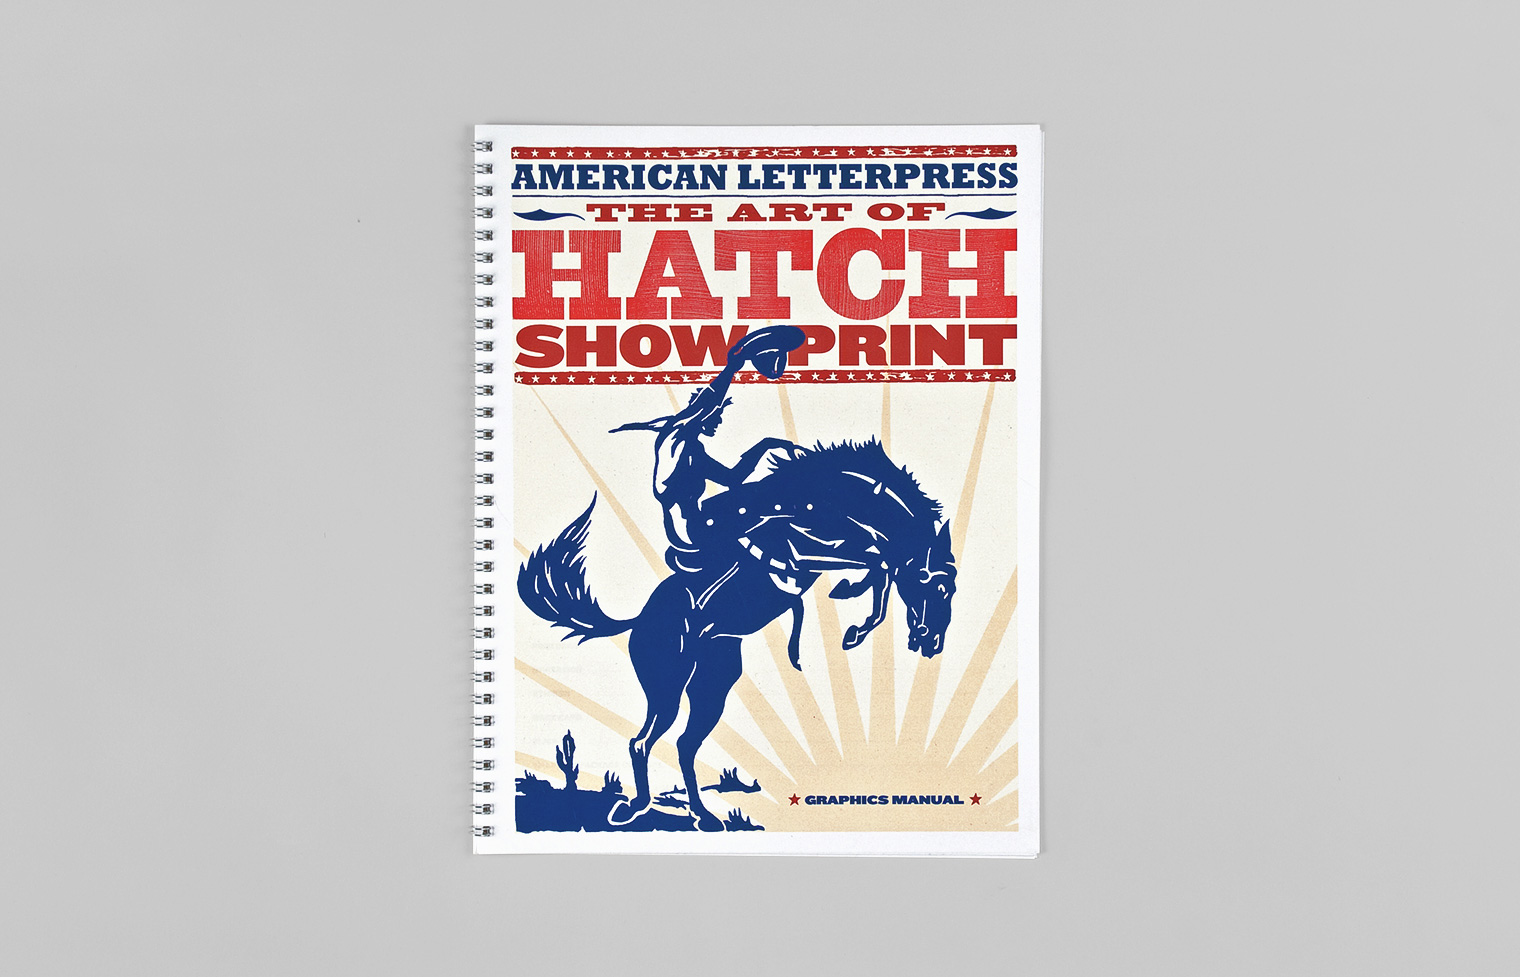 Type suggesting letterpress handbills and imagery adapted from a Hatch poster, evoke the art and spirit of the exhibition.